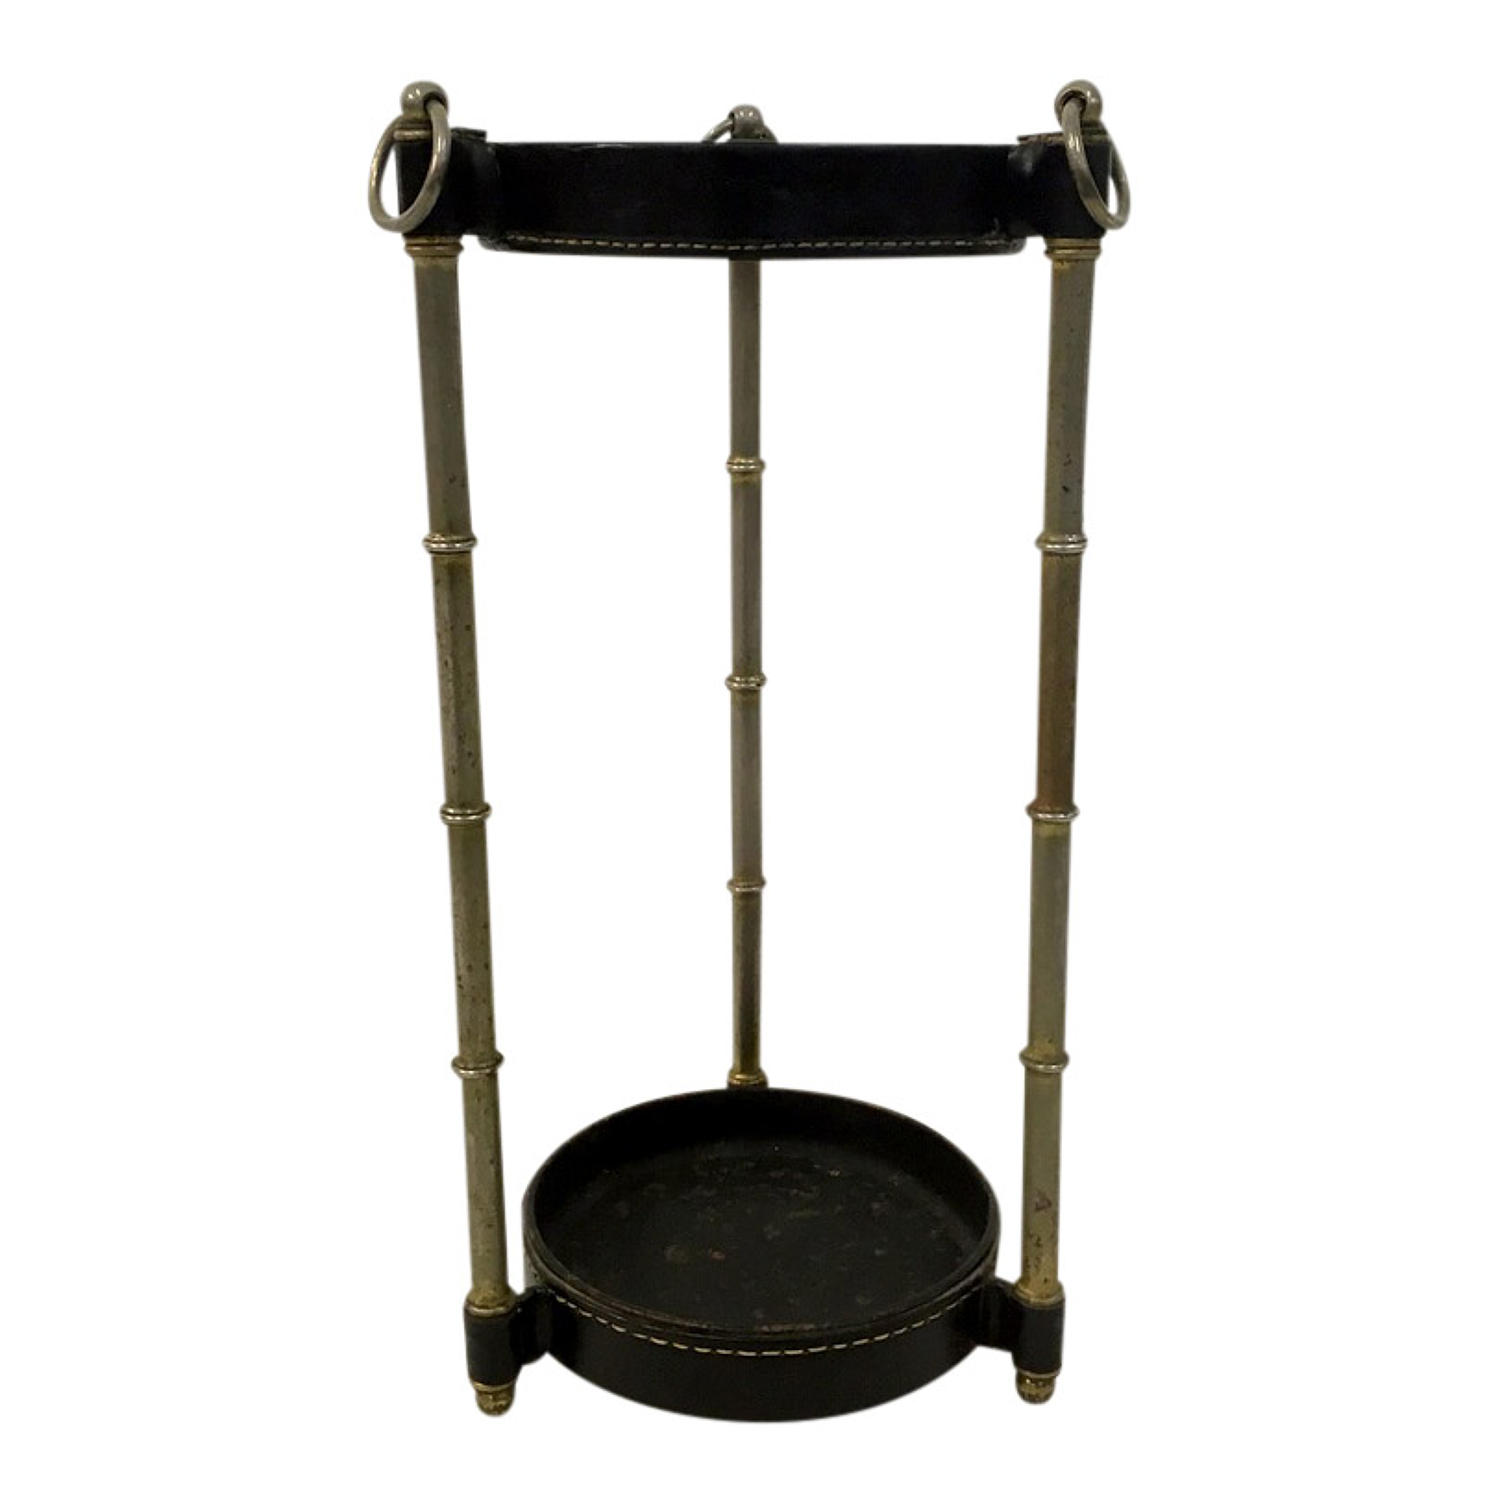 Leather and metal umbrella stand by Jacques Adnet